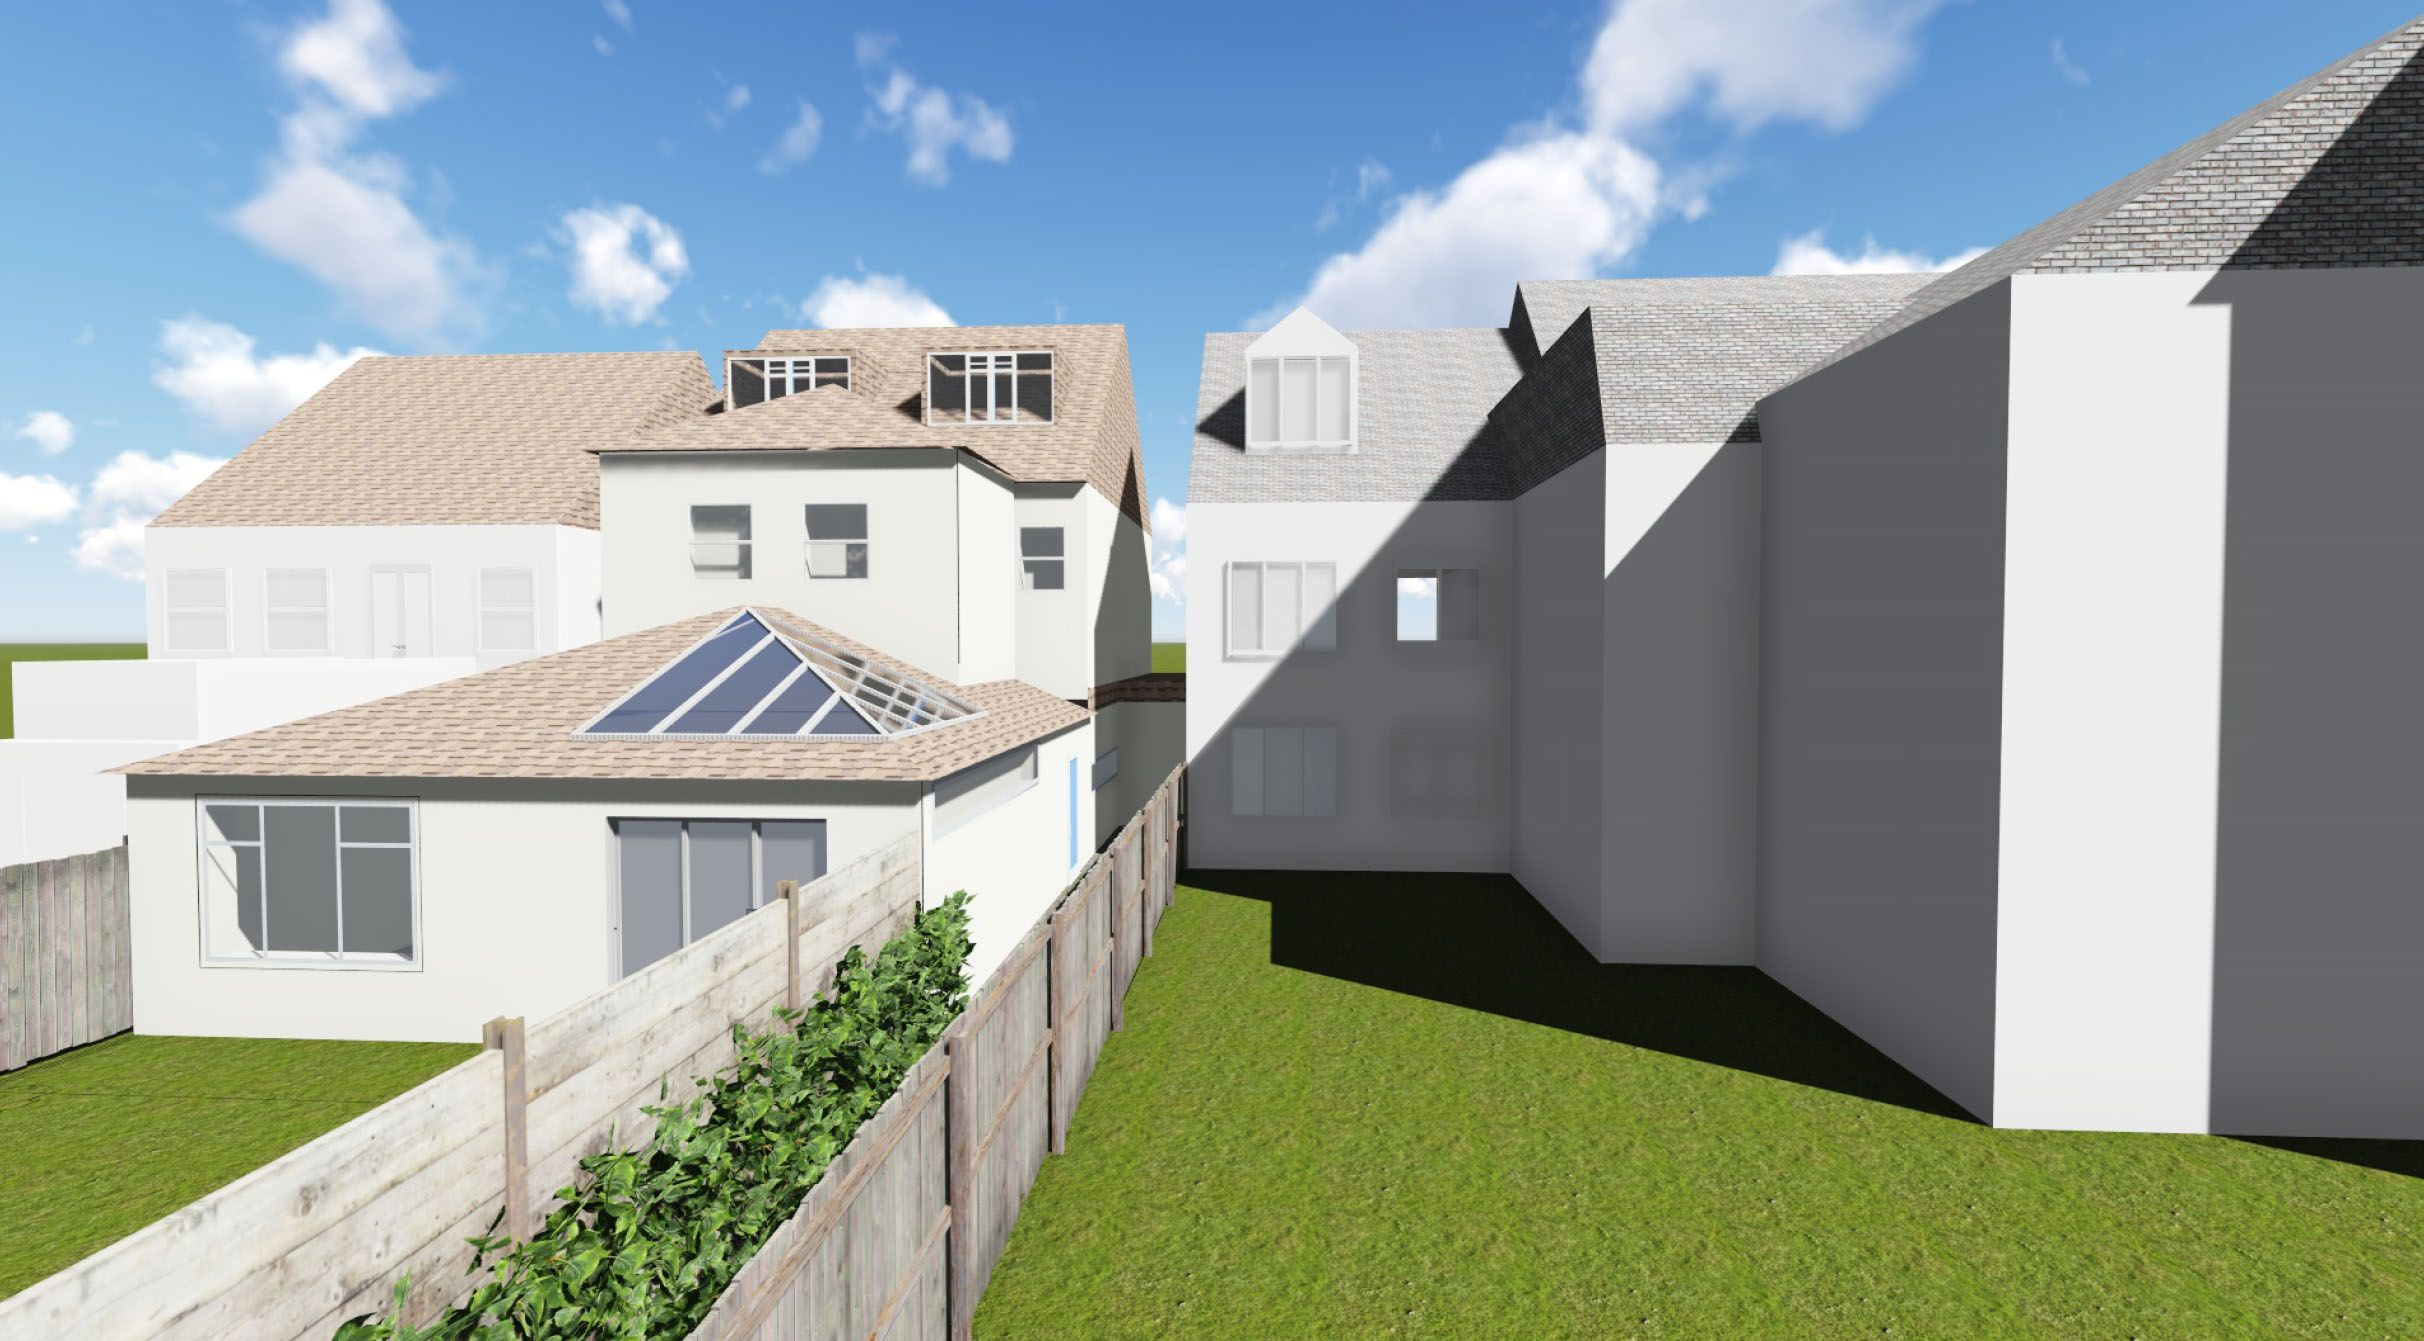 Single Storey Rear Extension in Croydon | Extension Architecture